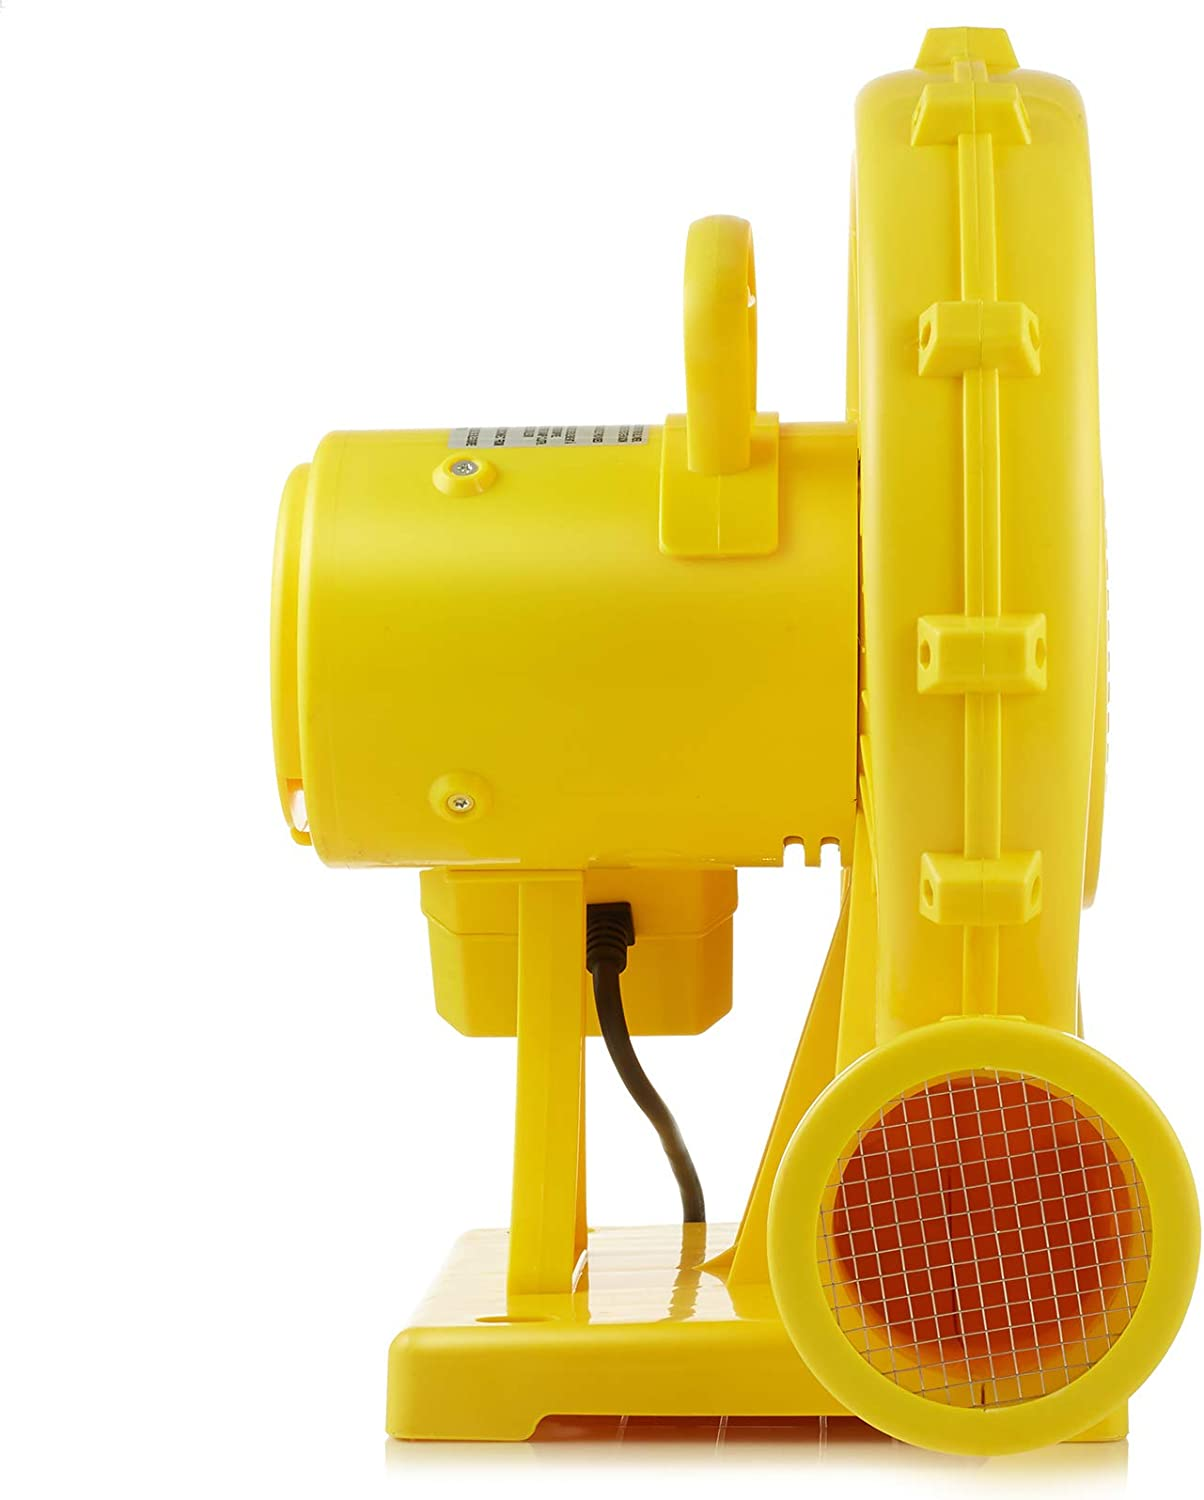 Cloud 9 Commercial 1200 Watt 1.5 HP Inflatable Bounce House Blower